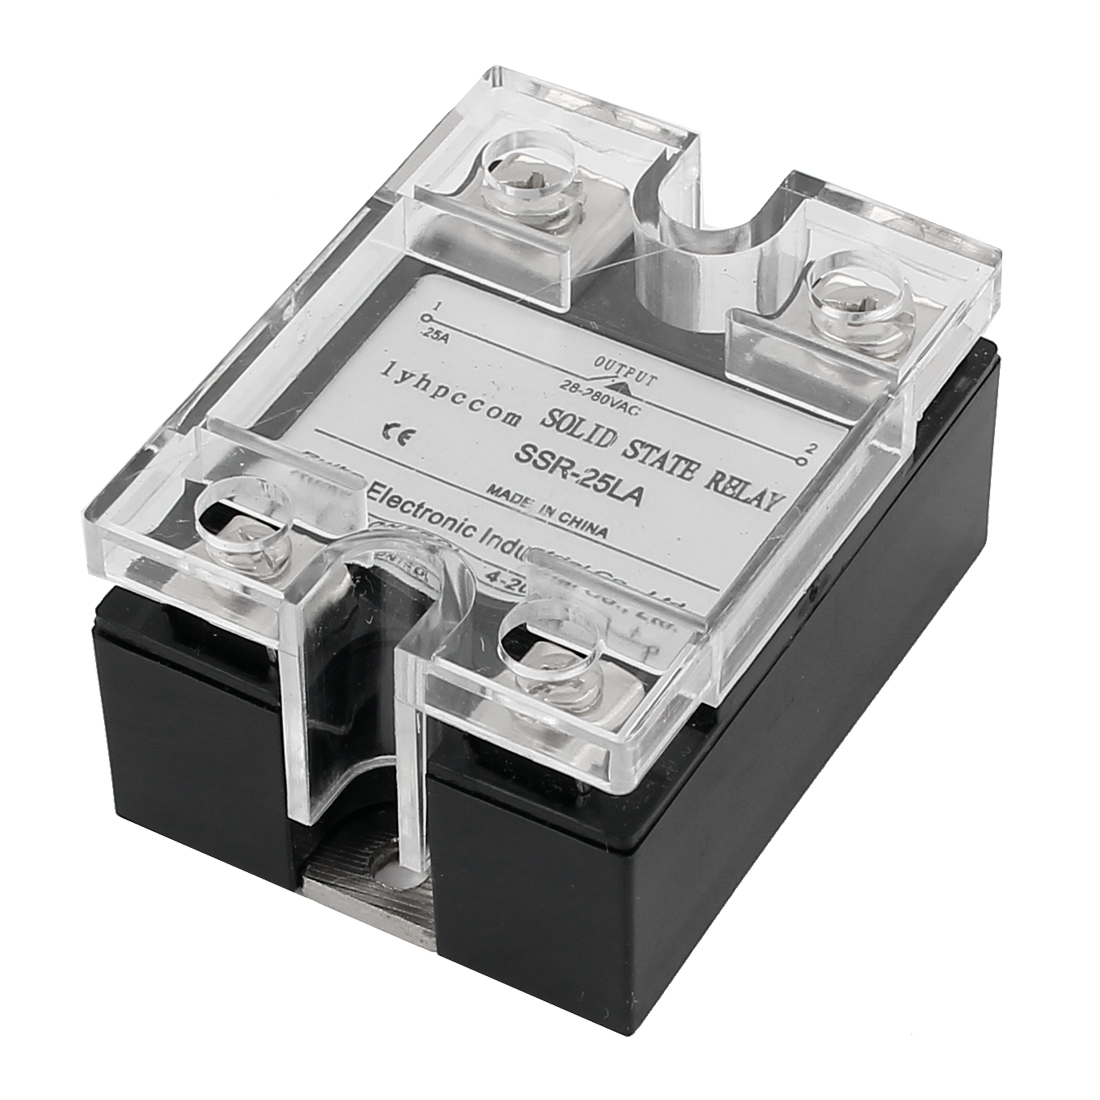 SSR-25LA 4-20mA Input AC 28-280V 25A Output 4 Screw Terminal Single Phase Clear Cover SSR Solid State Relay